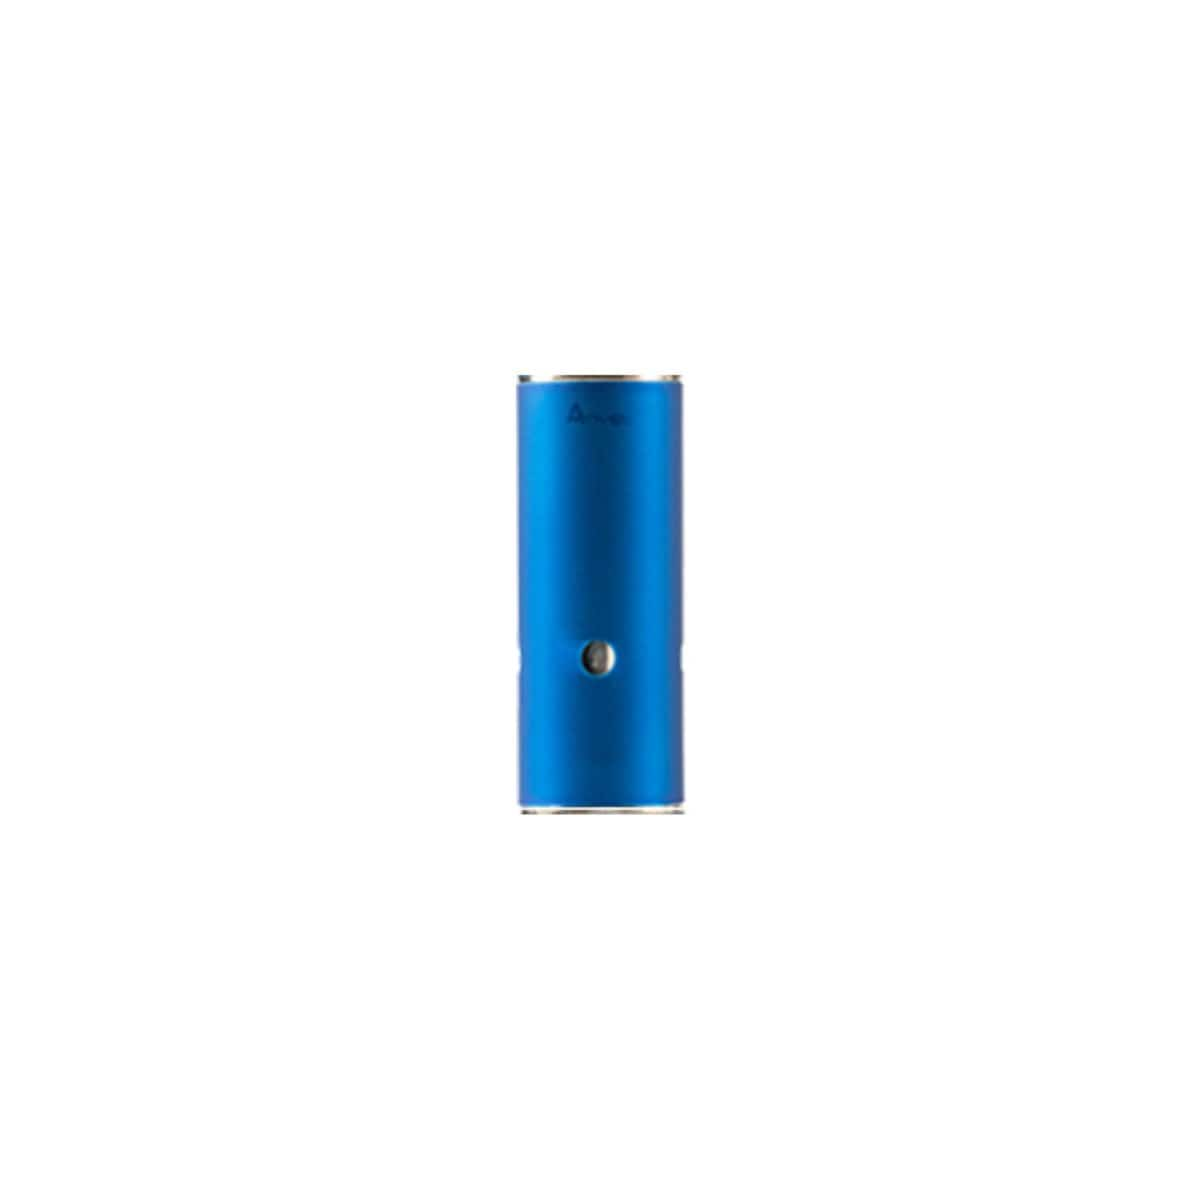 Atmos RX Heating Chamber - Blue